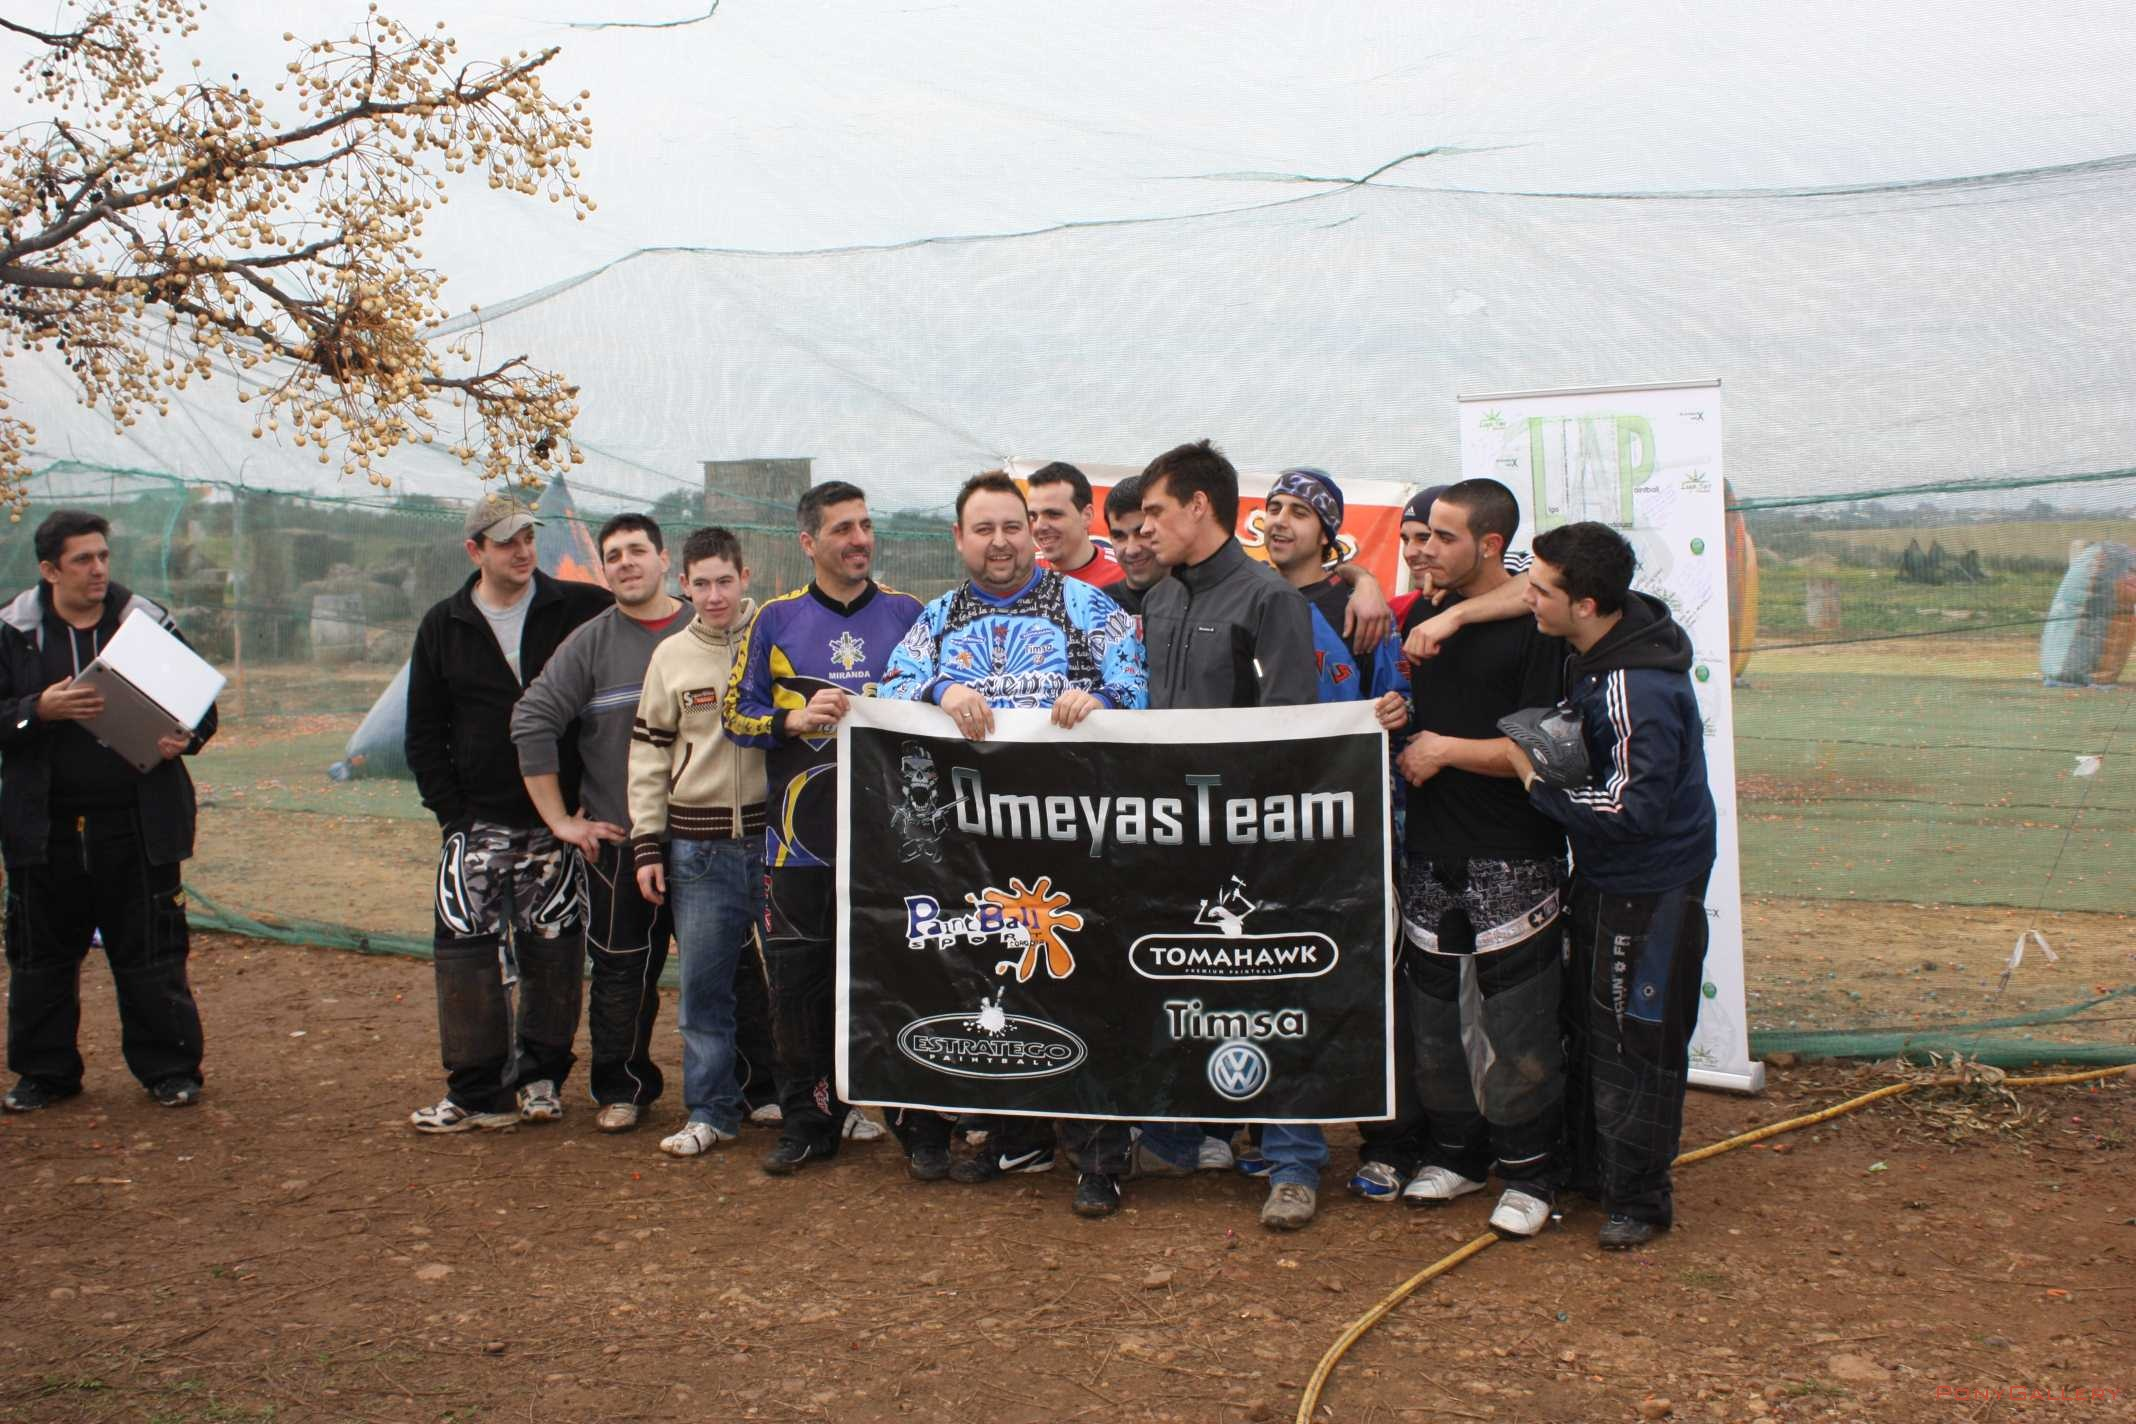 2012 marzo 05 noticias megacampo for Megacampo paintball madrid oficinas madrid